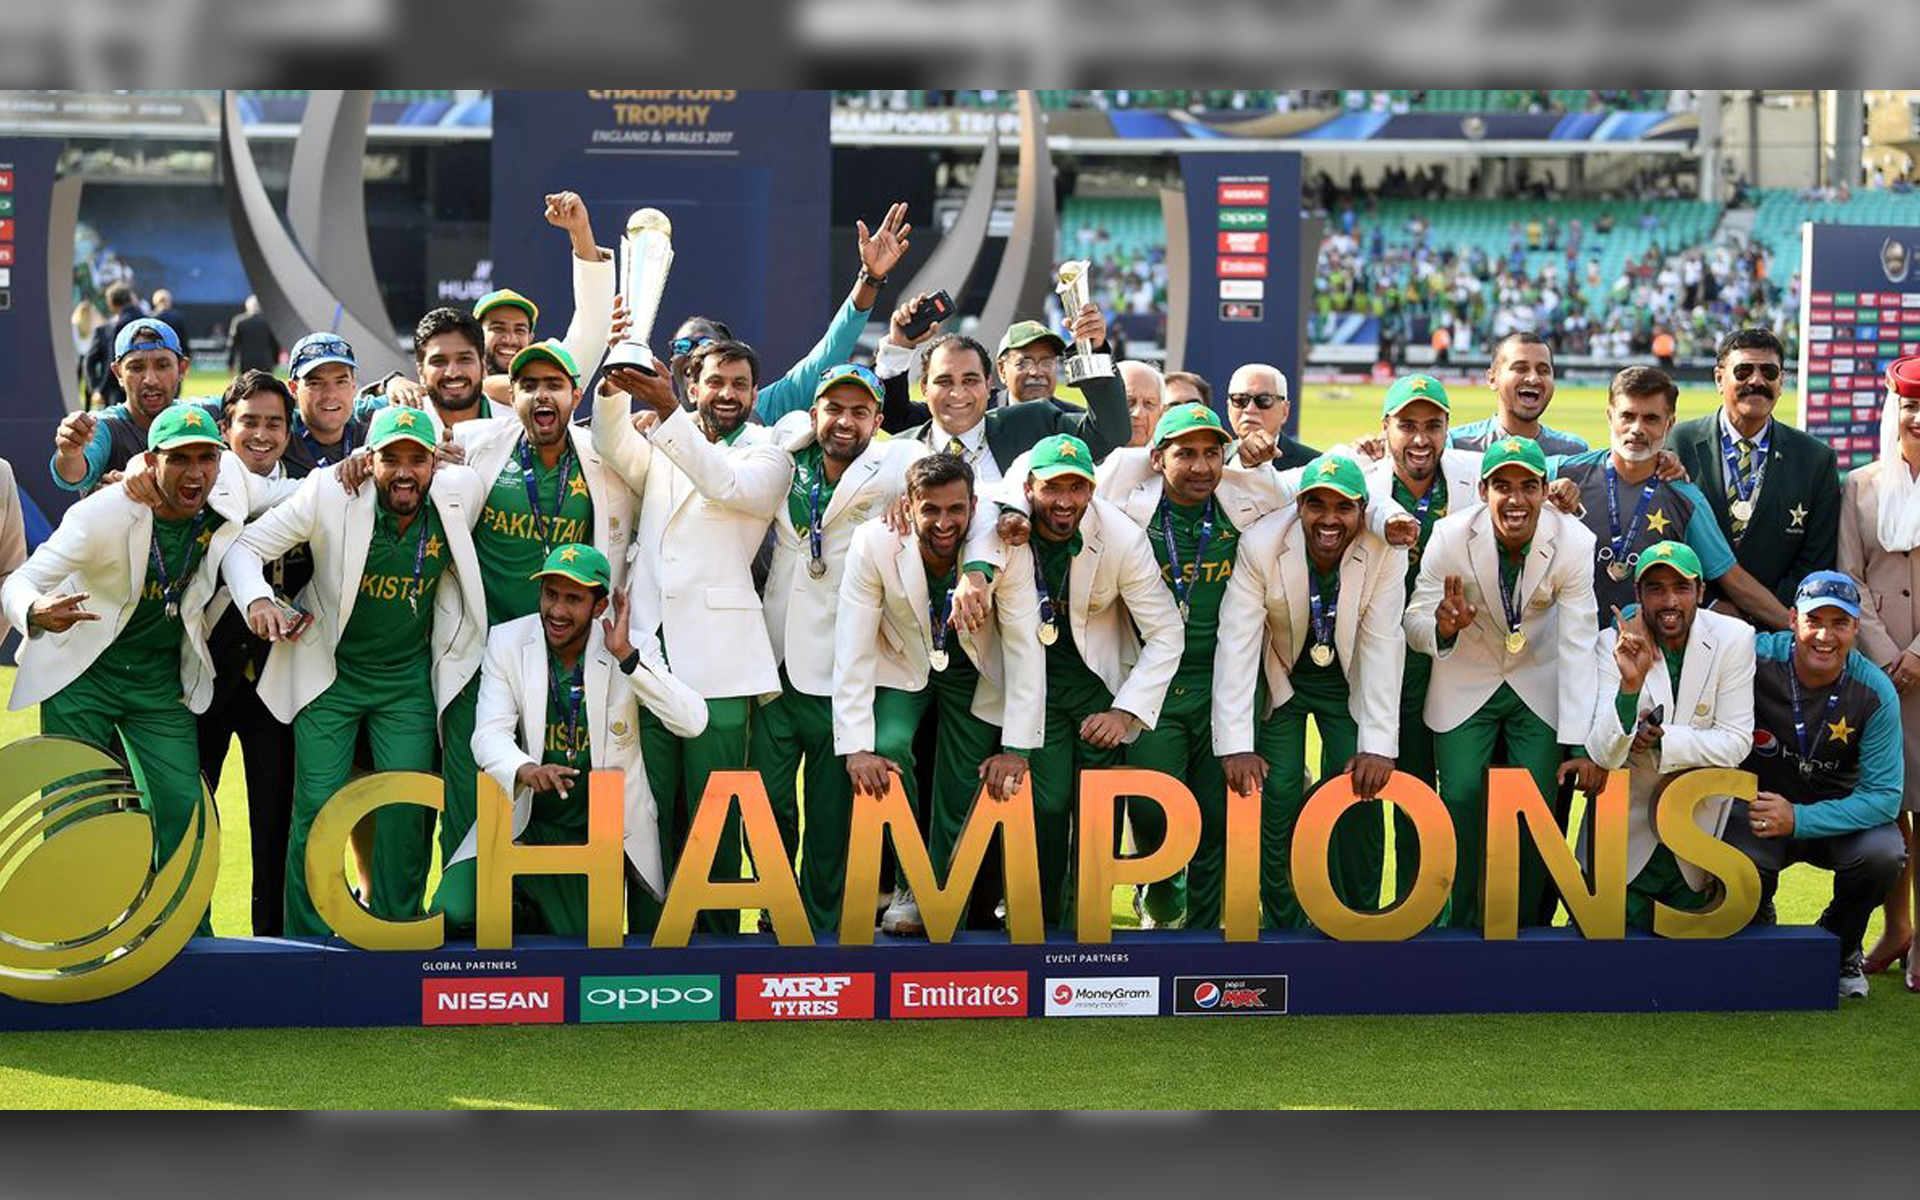 pakistan_cricket_team_sports_mobile_wallpaper.jpg